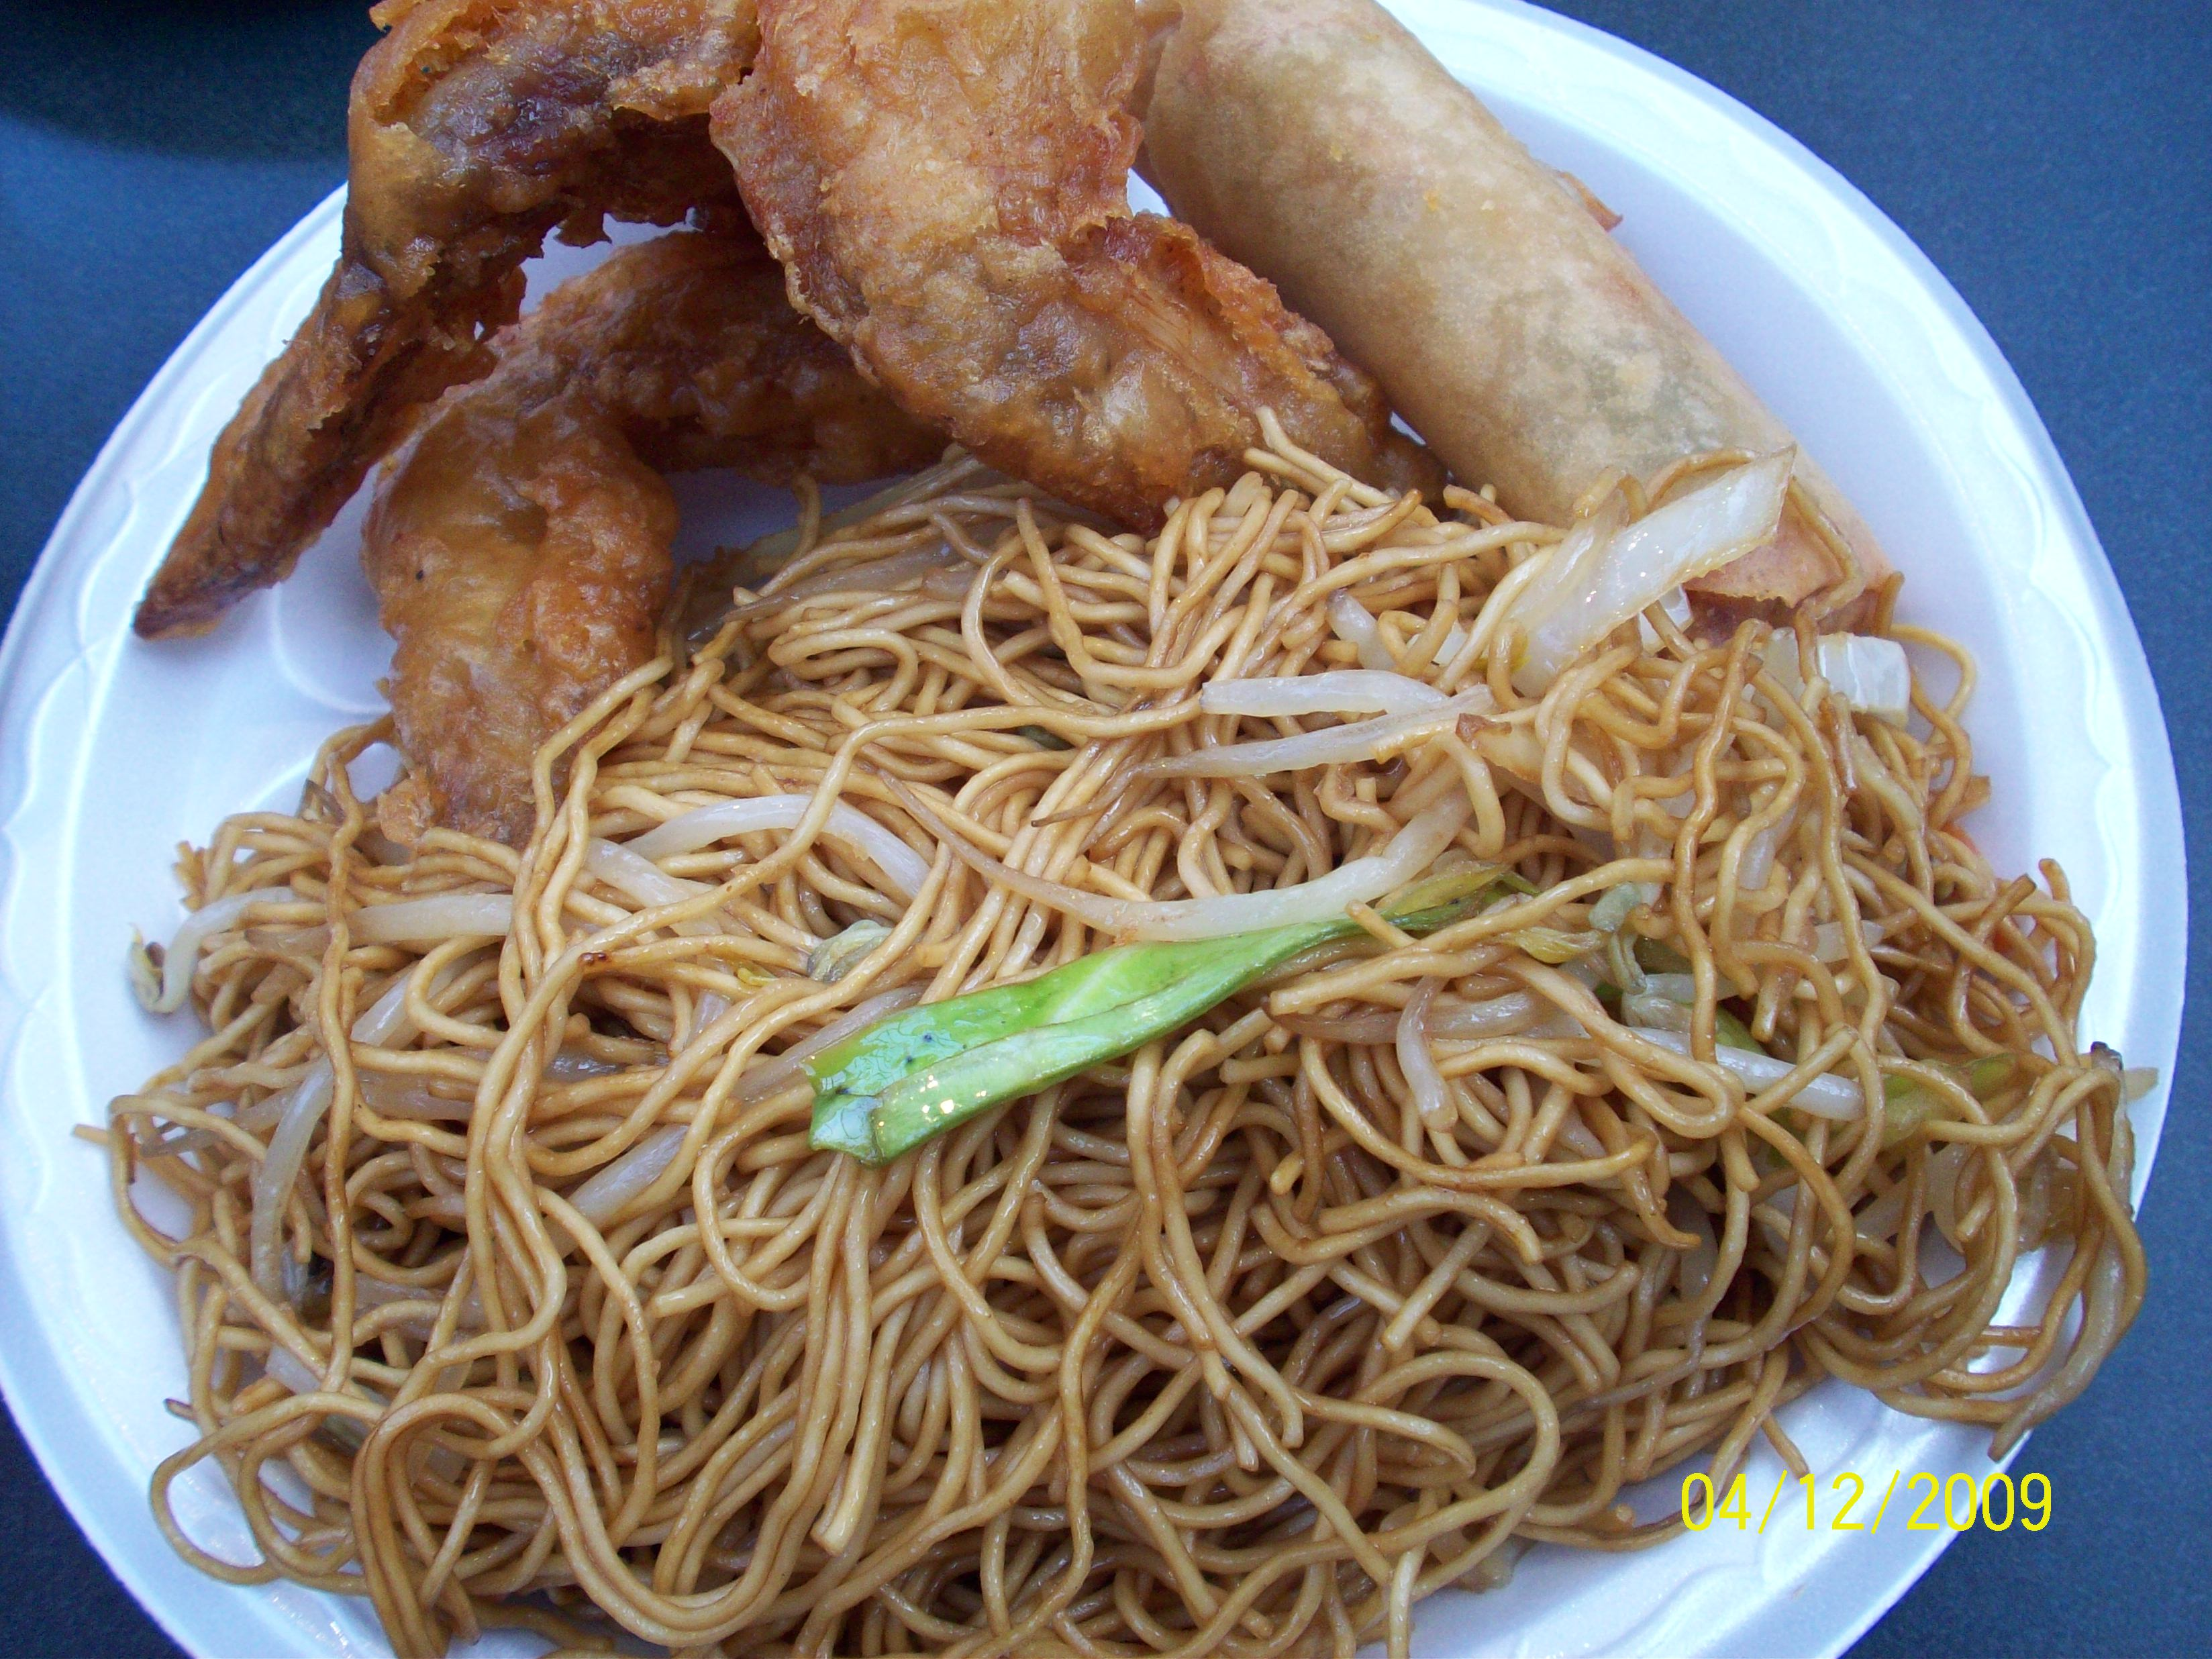 http://foodloader.net/cutie_2009-12-04_Fried_Noodles__Spring_Roll__Fried_Chicken_Wings.jpg